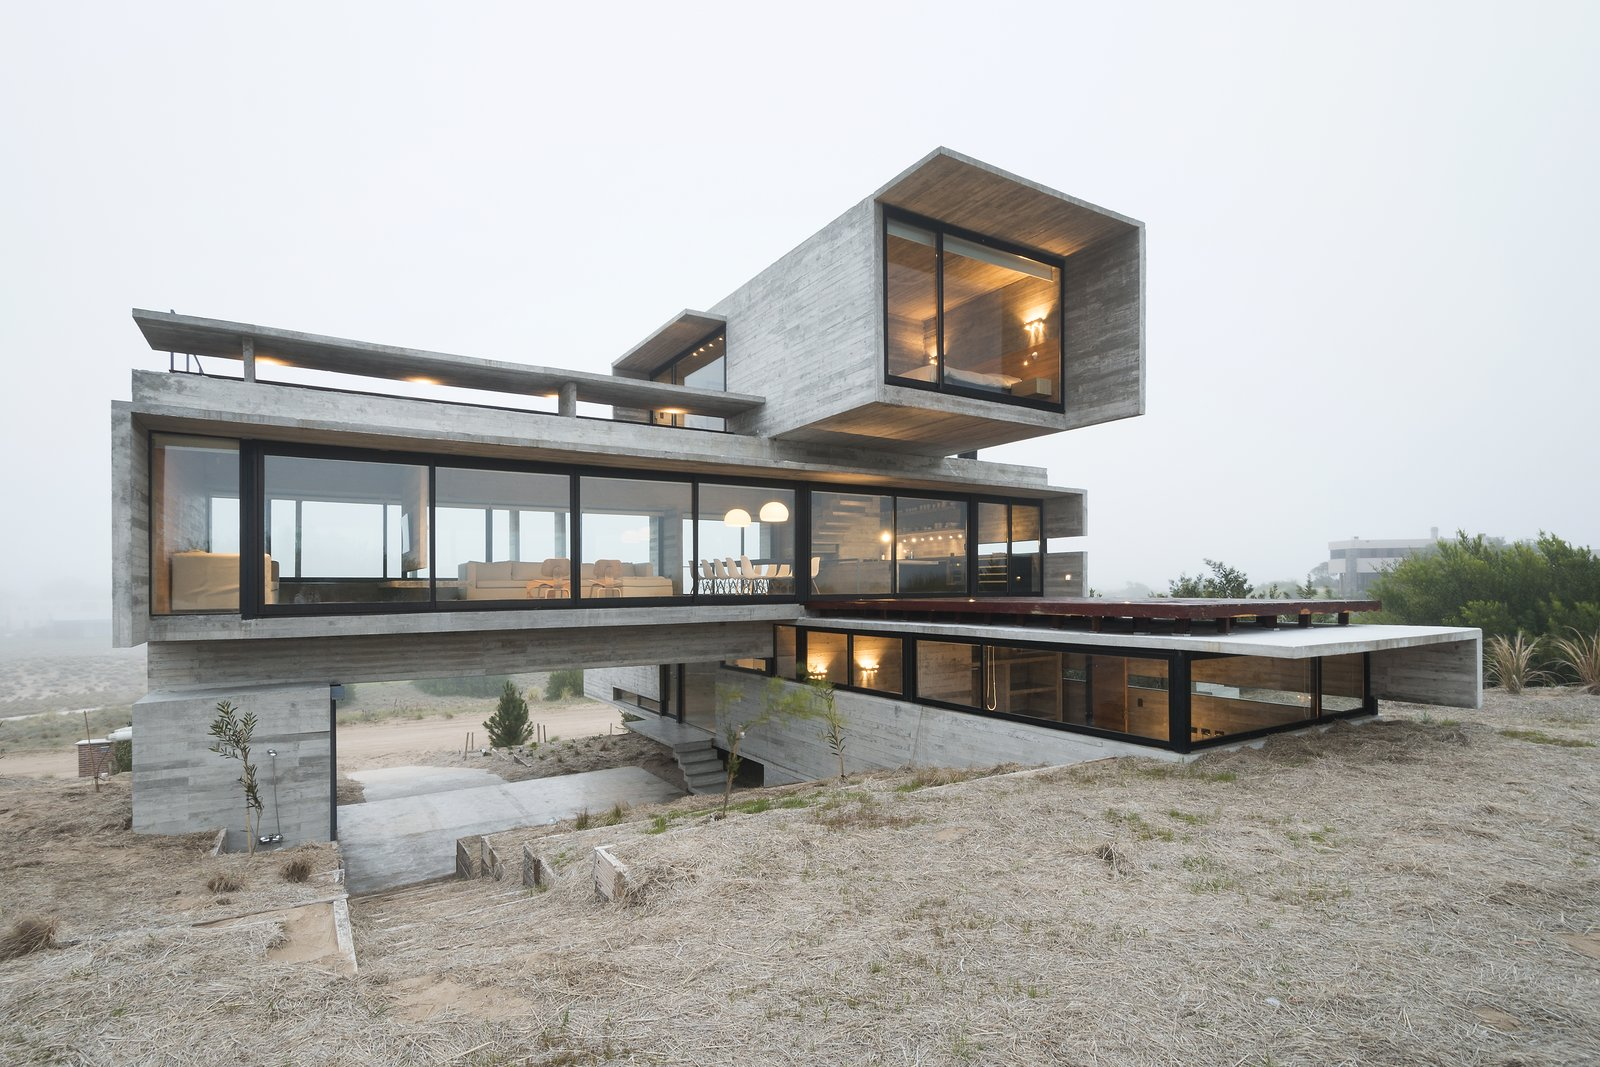 The cavern-like space underneath the middle volume serves as a parking area. Tagged: Exterior, House, Glass Siding Material, Flat RoofLine, and Concrete Siding Material.  Best Photos from This Stacked Concrete Home Is Not Your Typical Golf Course Dwelling